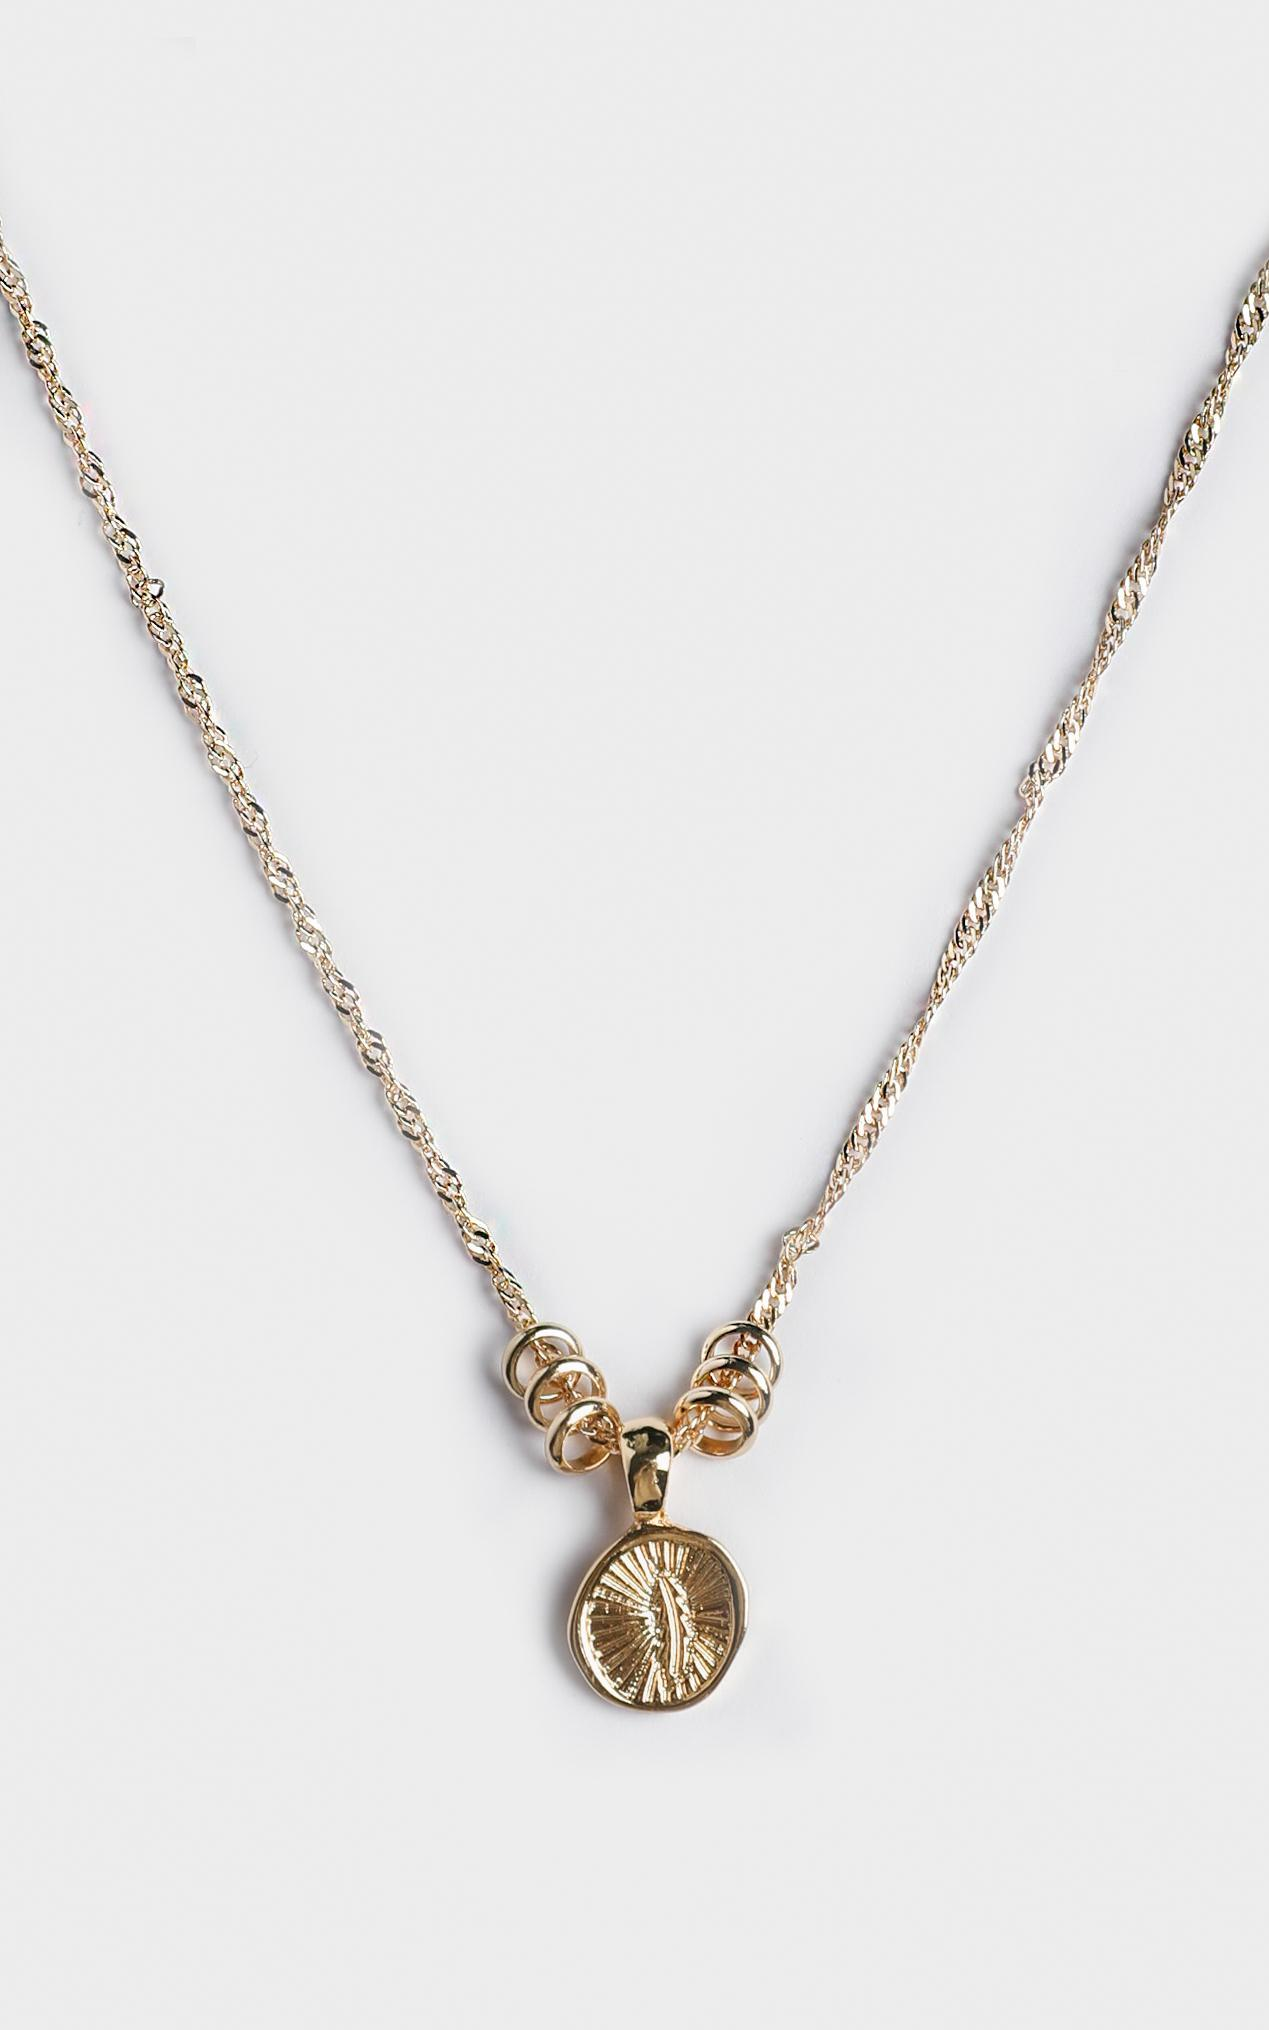 Minc Collections - Maui Pendant Necklace in Gold, , hi-res image number null